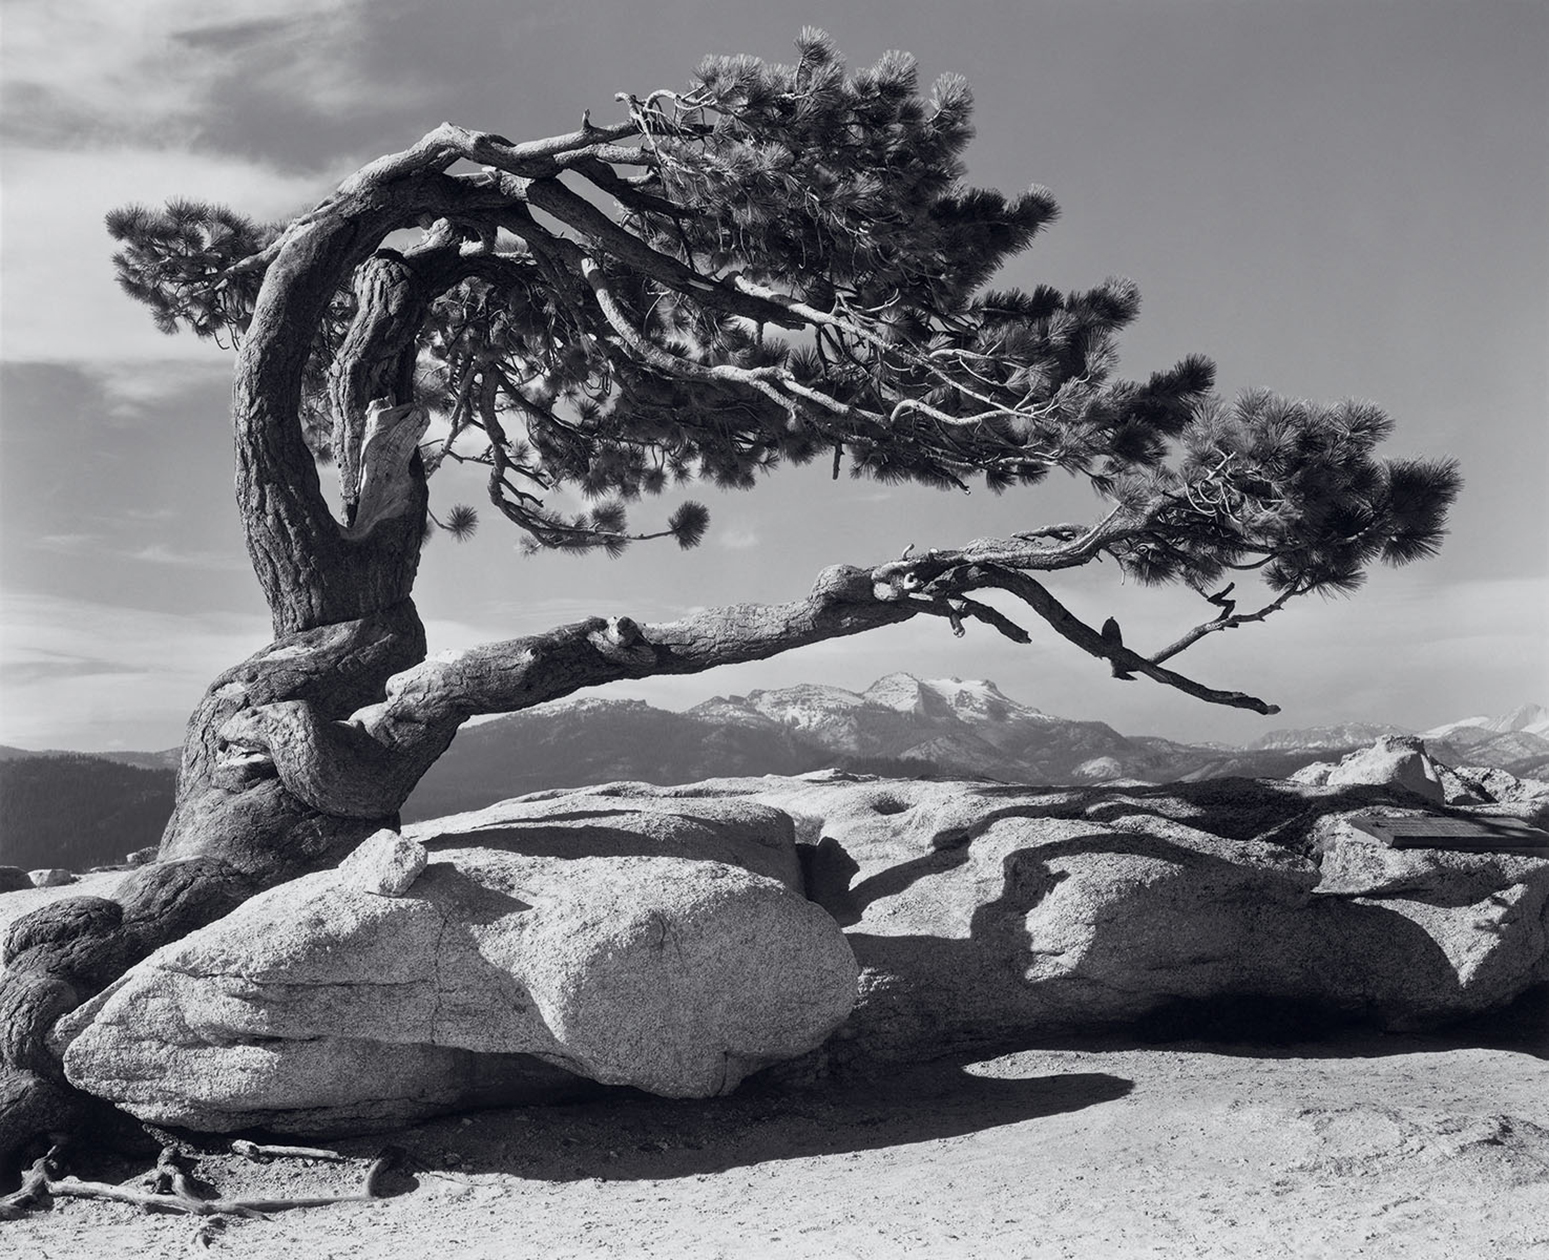 Jeffrey Pine, Ansel Adams photographer (Image courtesy of anseladams.com